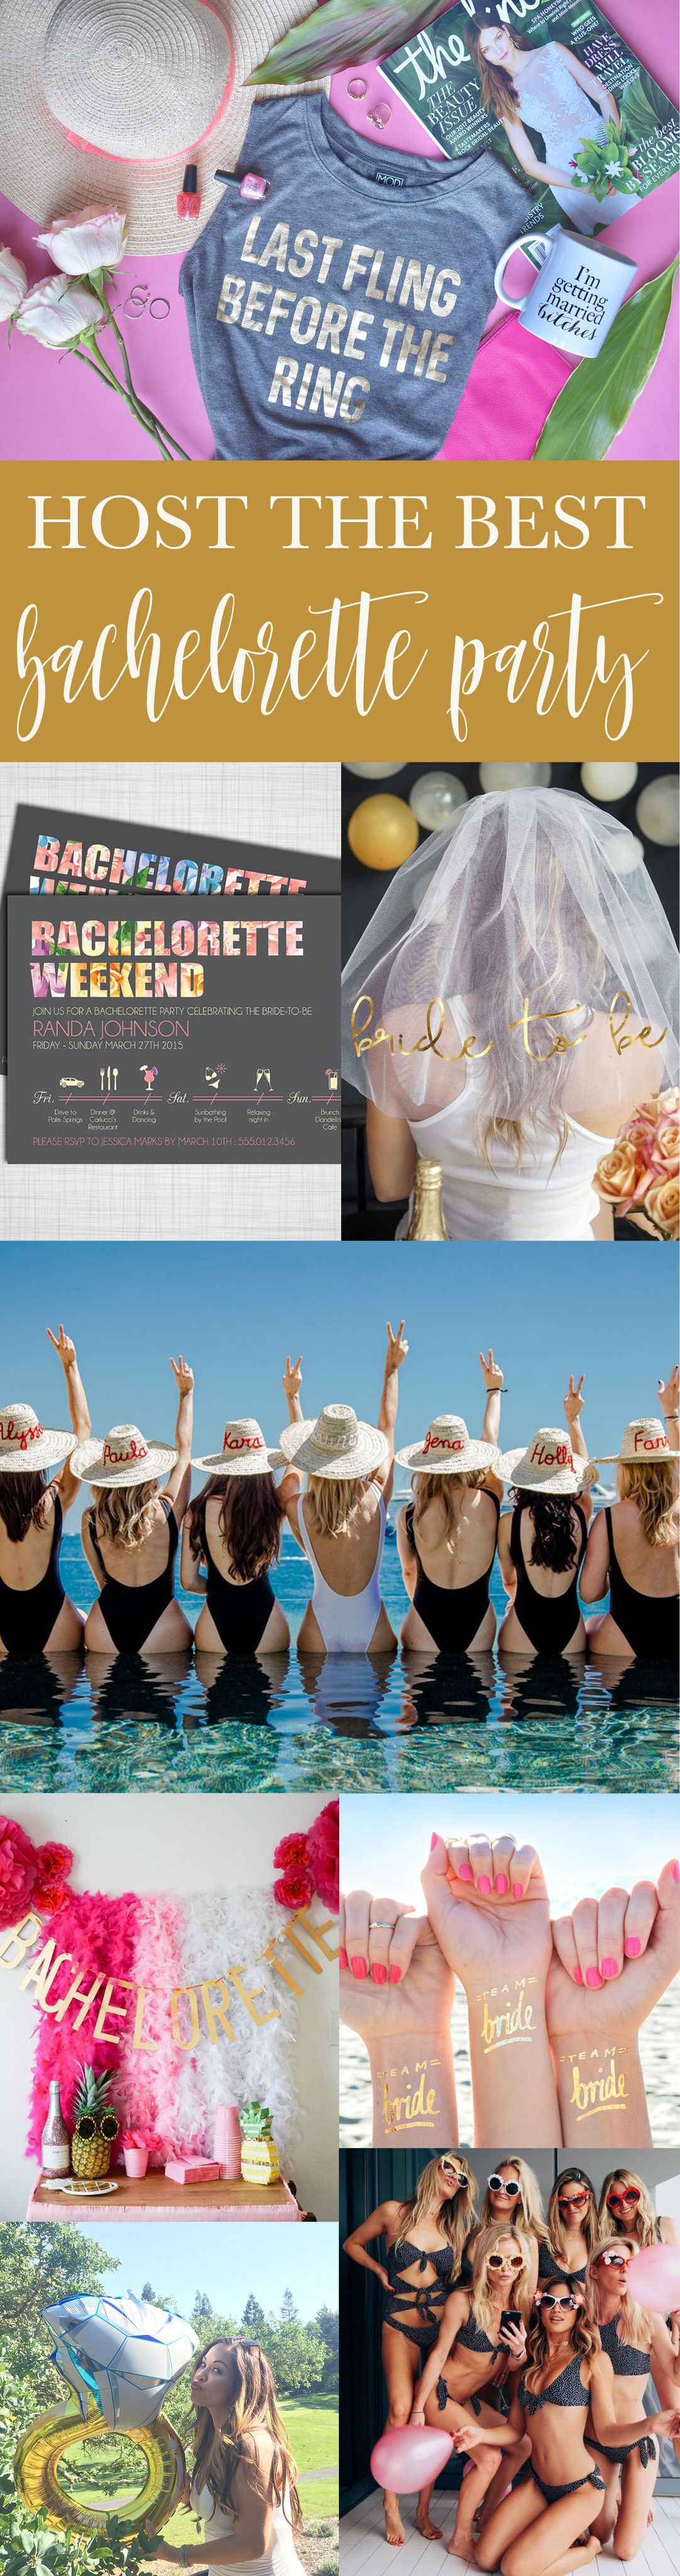 7 Tips for Throwing the Best Bachelorette Party | Pinterest ...